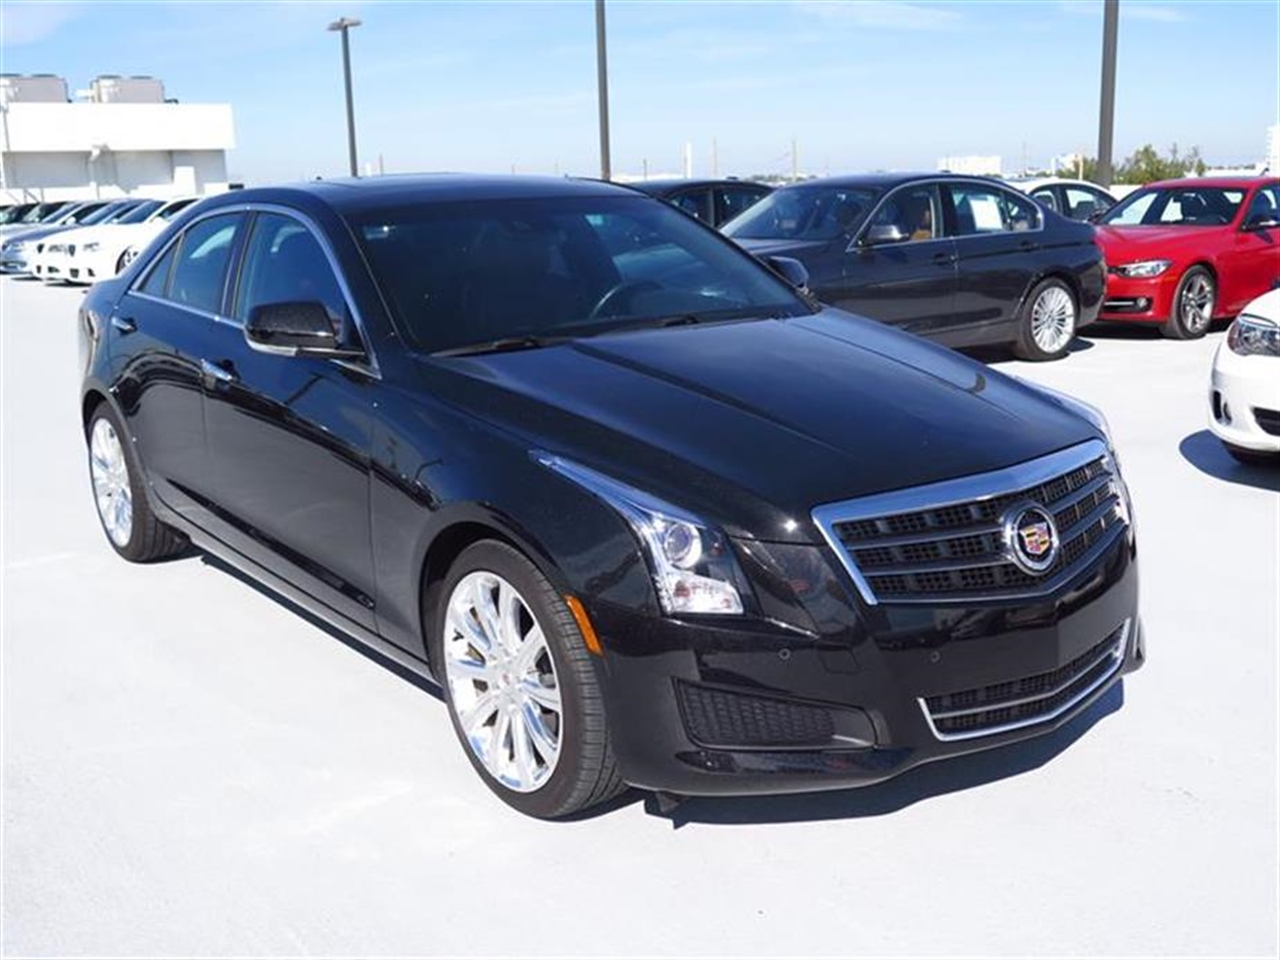 2014 CADILLAC ATS 4dr Sdn 20L Luxury RWD 9961 miles Adaptive Remote Start Not available with M